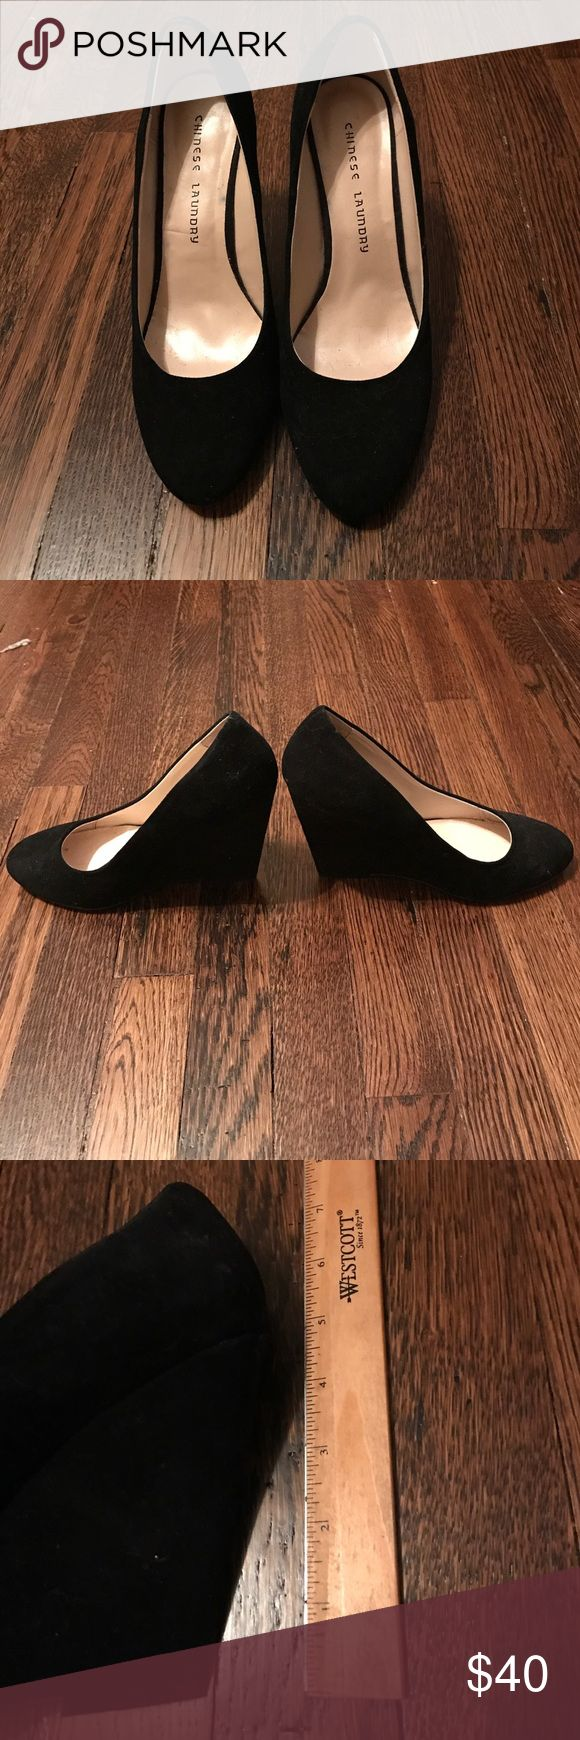 Chinese Laundry- suede, 5 in, black wedges NWOT Chinese Laundry- suede, 5 in, black wedges SZ 10 NWOT.  Offers are welcome 😊 Chinese Laundry Shoes Wedges